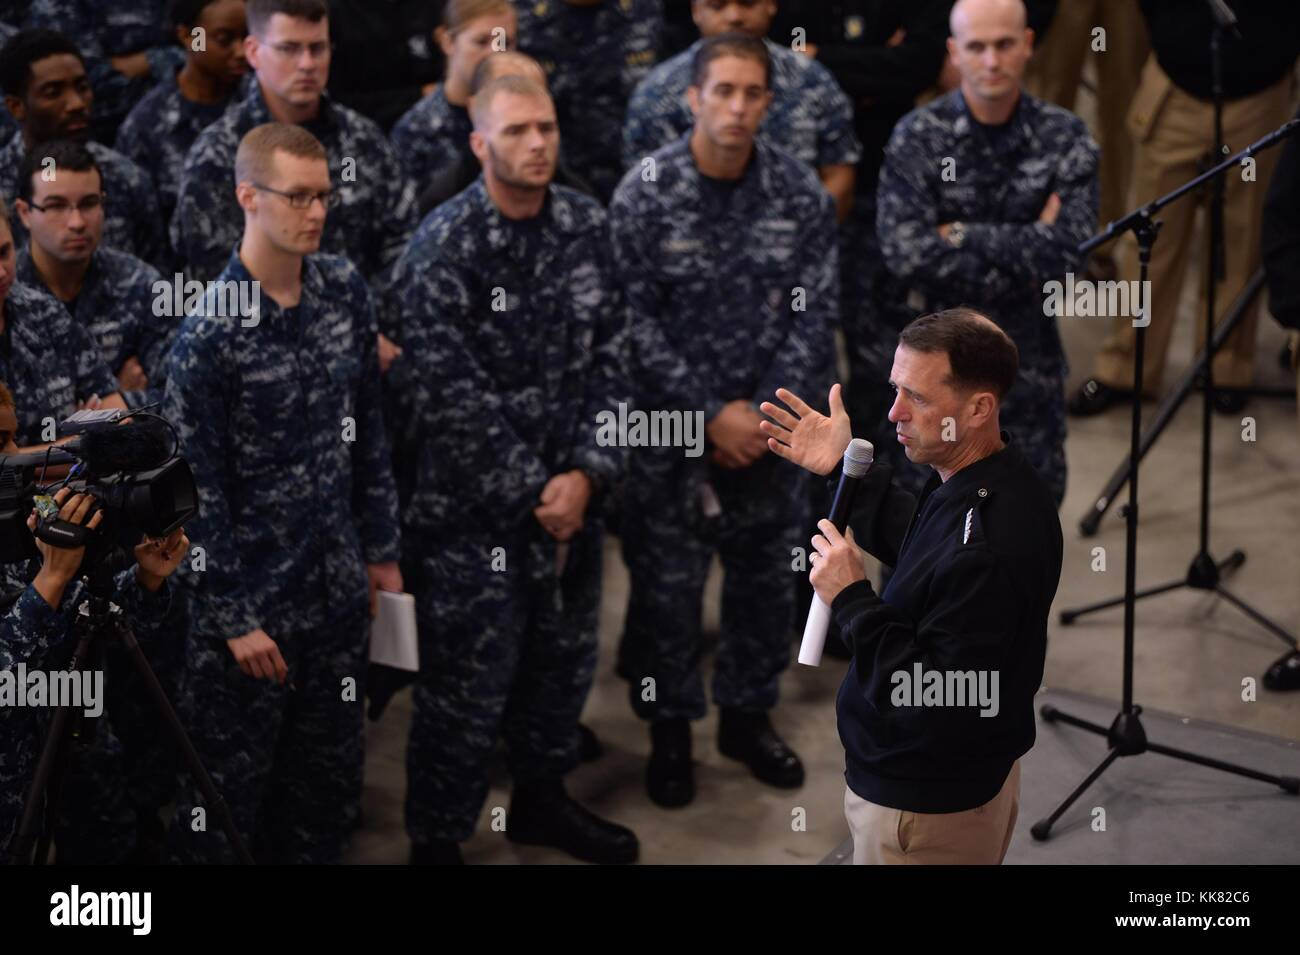 Chief of Naval Operations CNO Admiral John Richardson provides remarks during an all-hands call at Naval Support - Stock Image